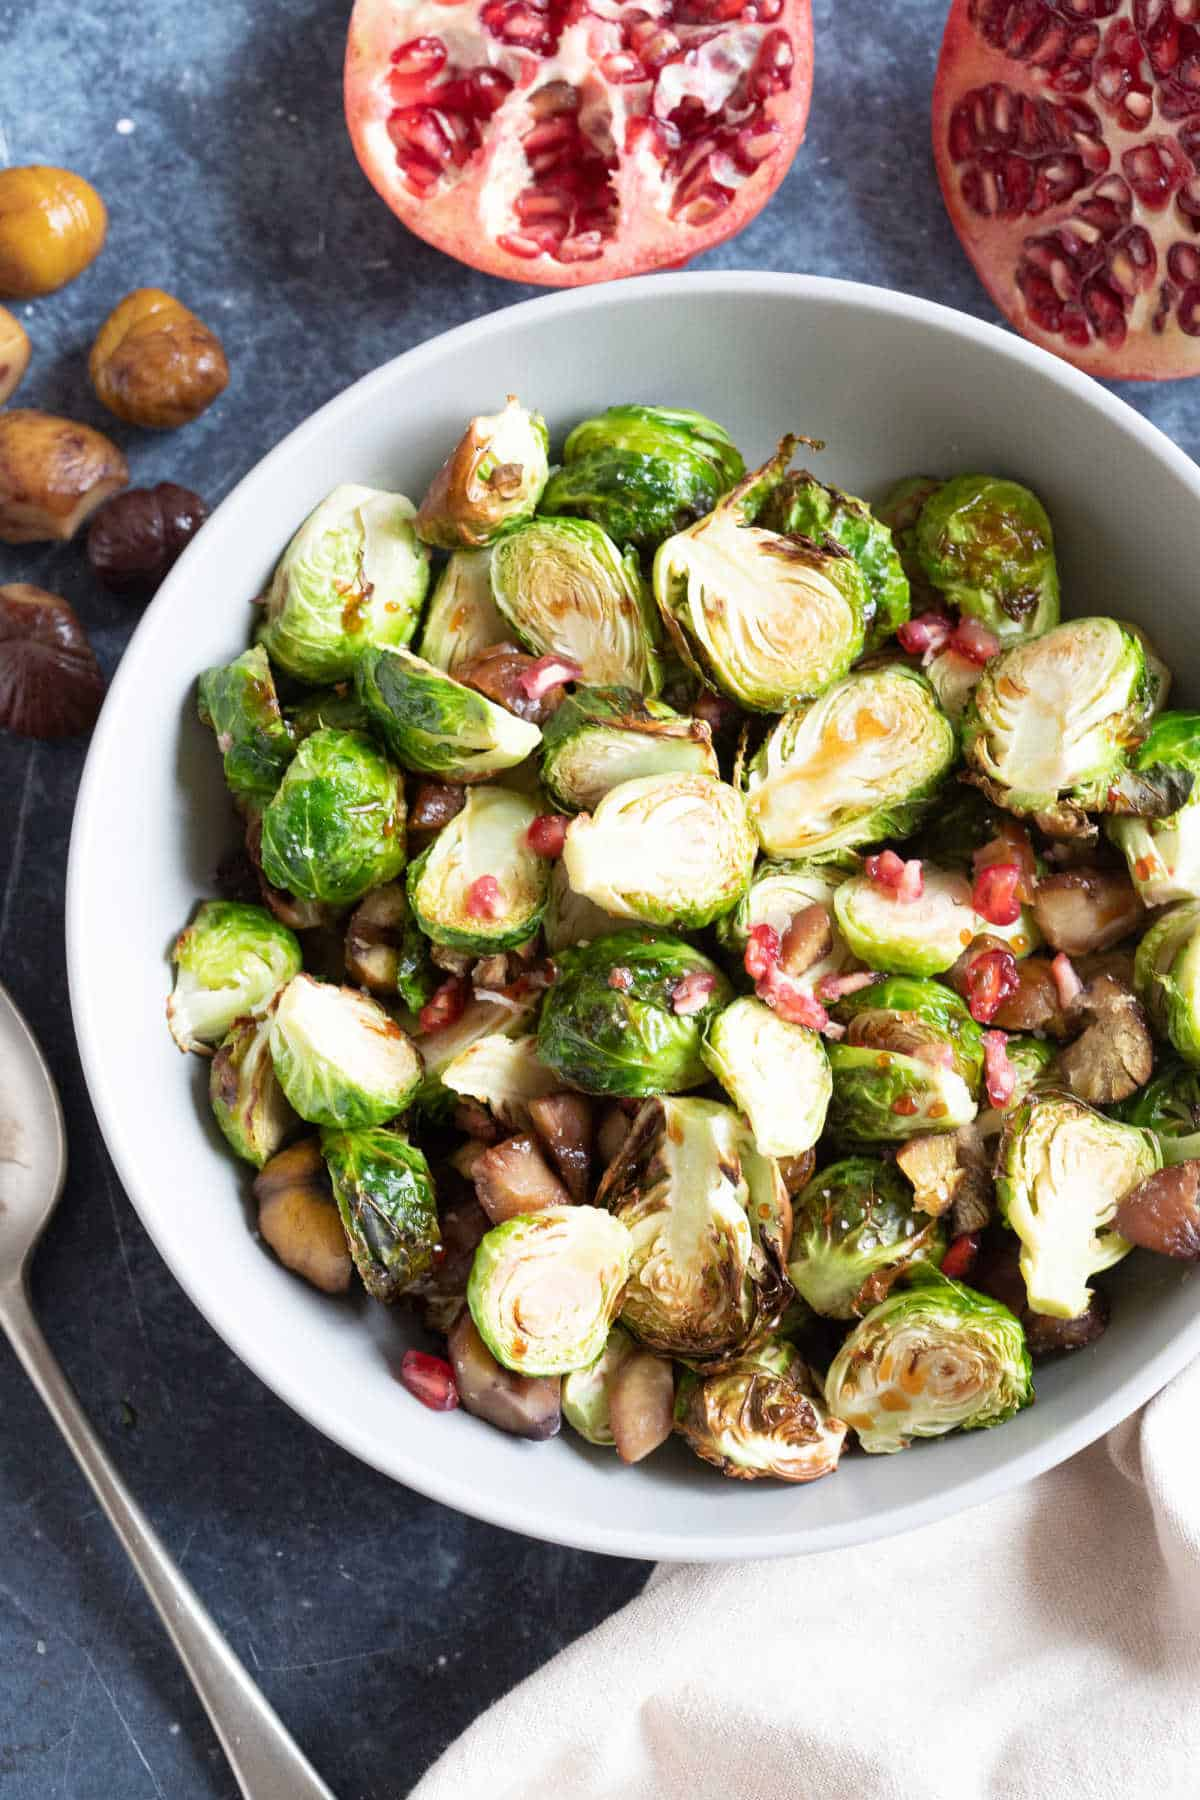 Crispy air fryer brussels sprouts with chestnuts.